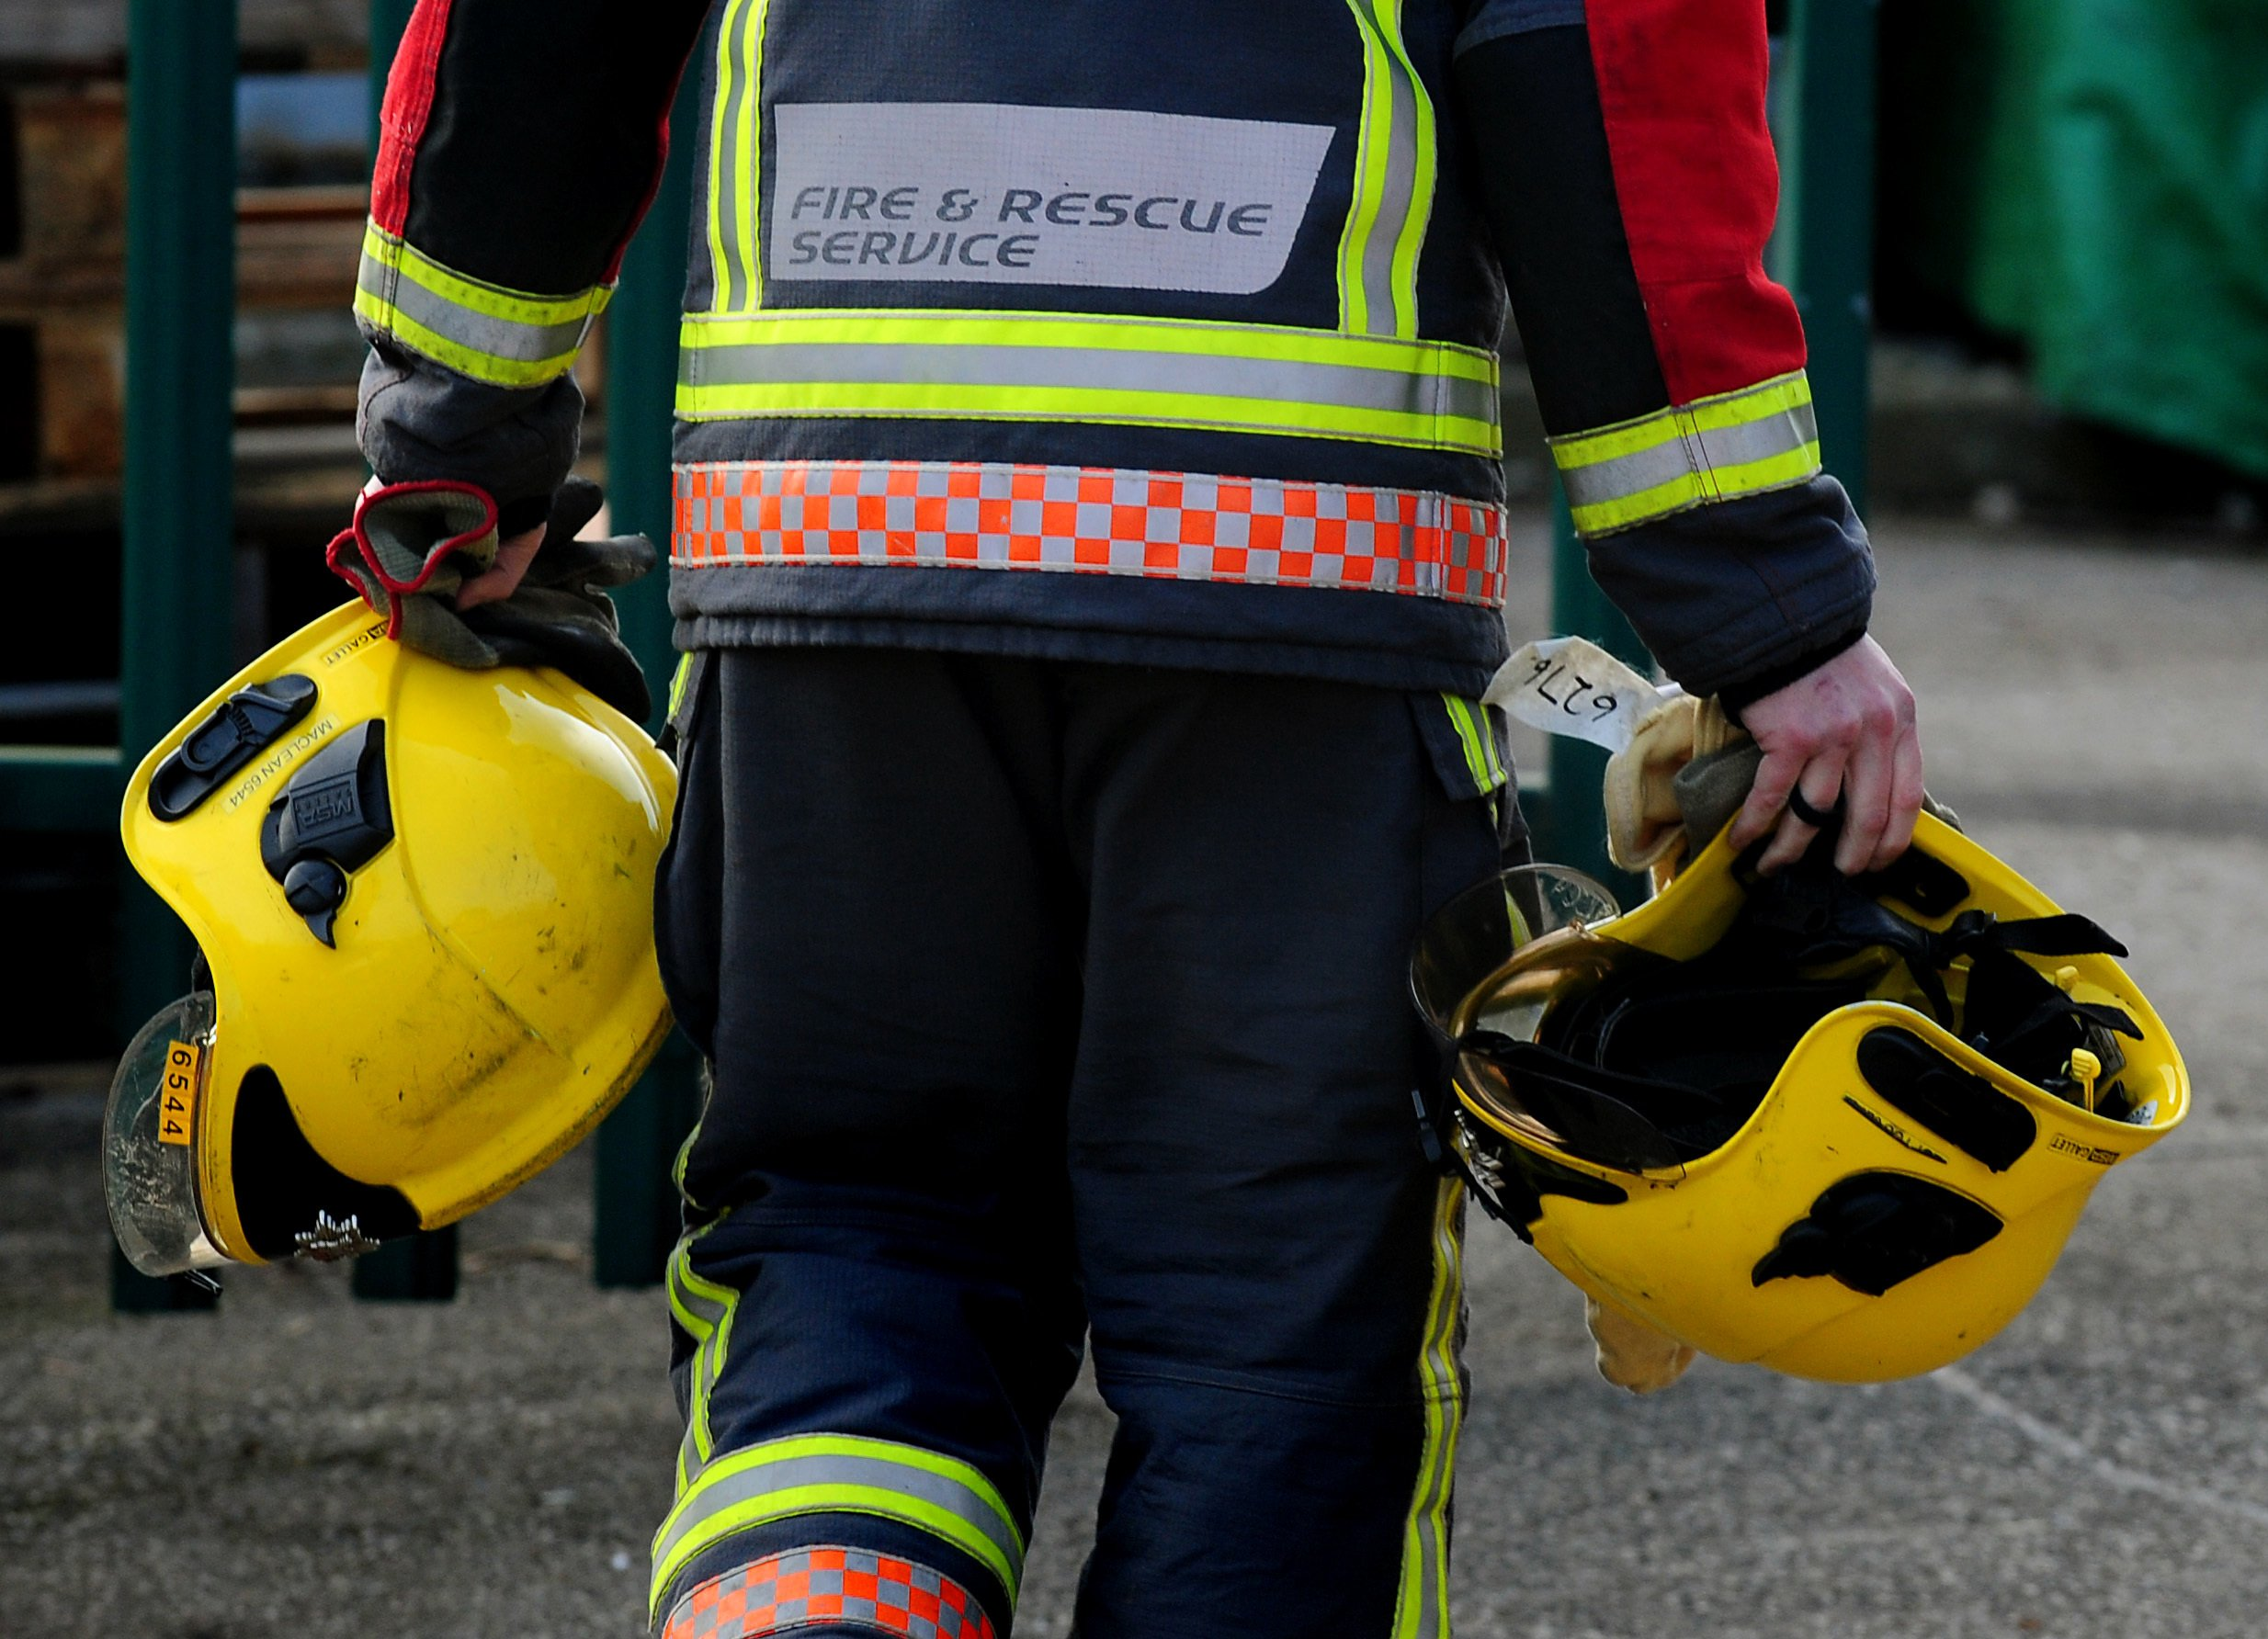 Firefighters' pandemic response 'limited and delayed' amid health and safety row